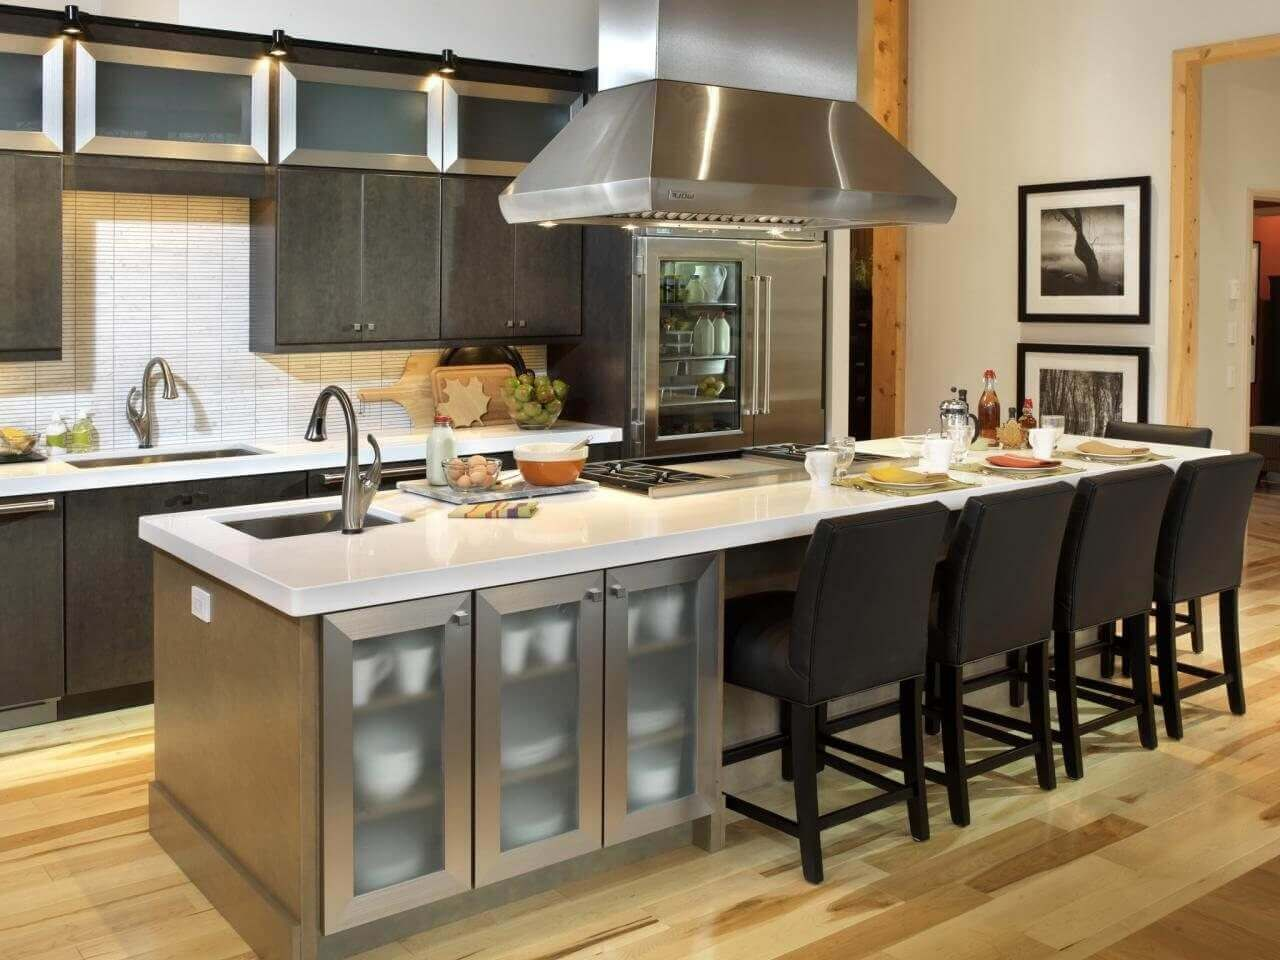 This Long Kitchen Island With Seating Has A Large Sink Cooktop And Stainless Steel Cupboard That Contribute To Its Luxurious Styling